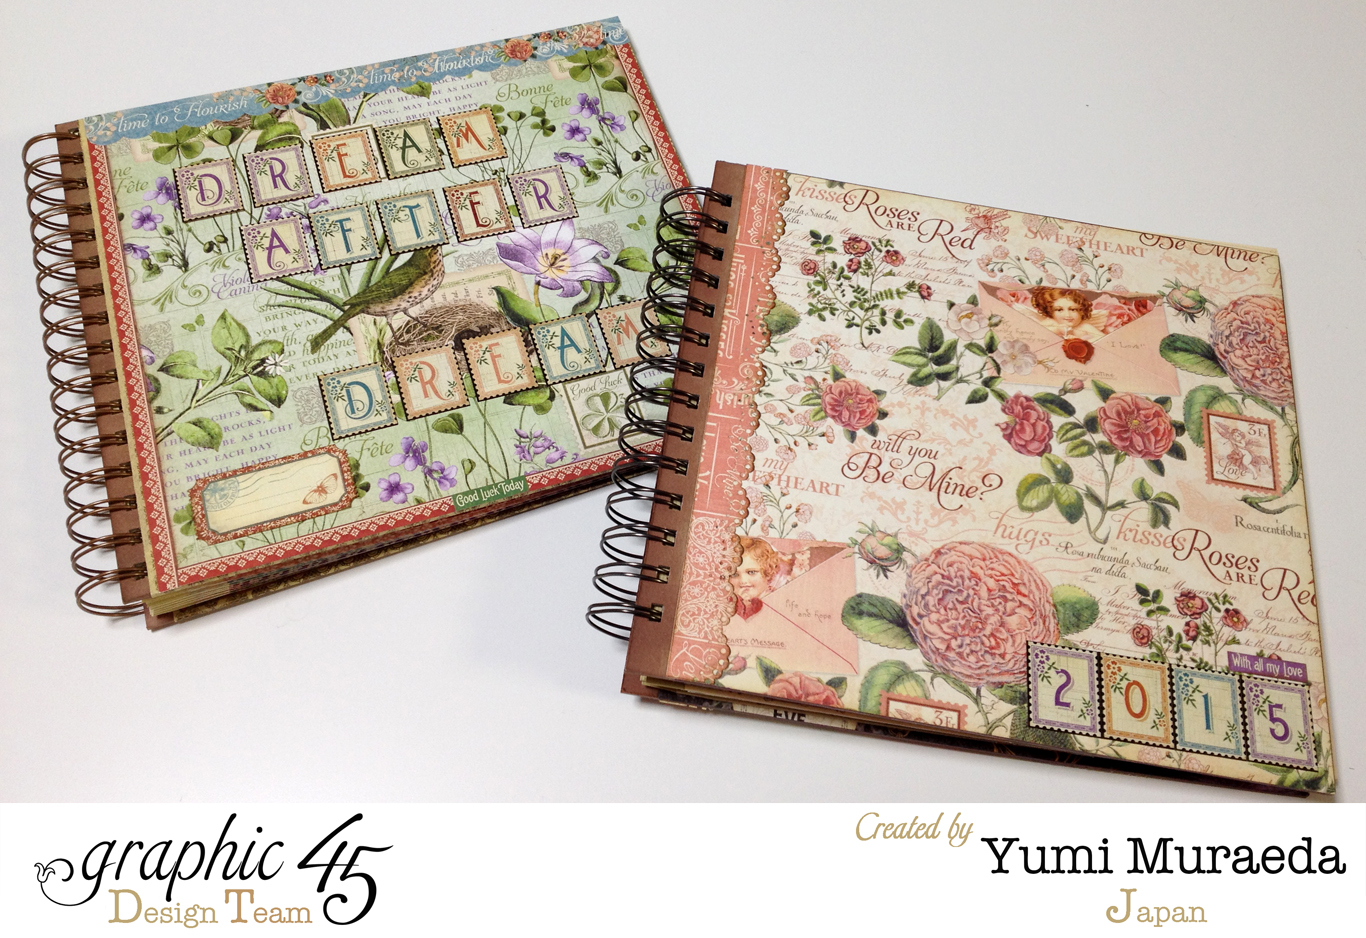 yuyu3-Time to Flourish New Years book1-1